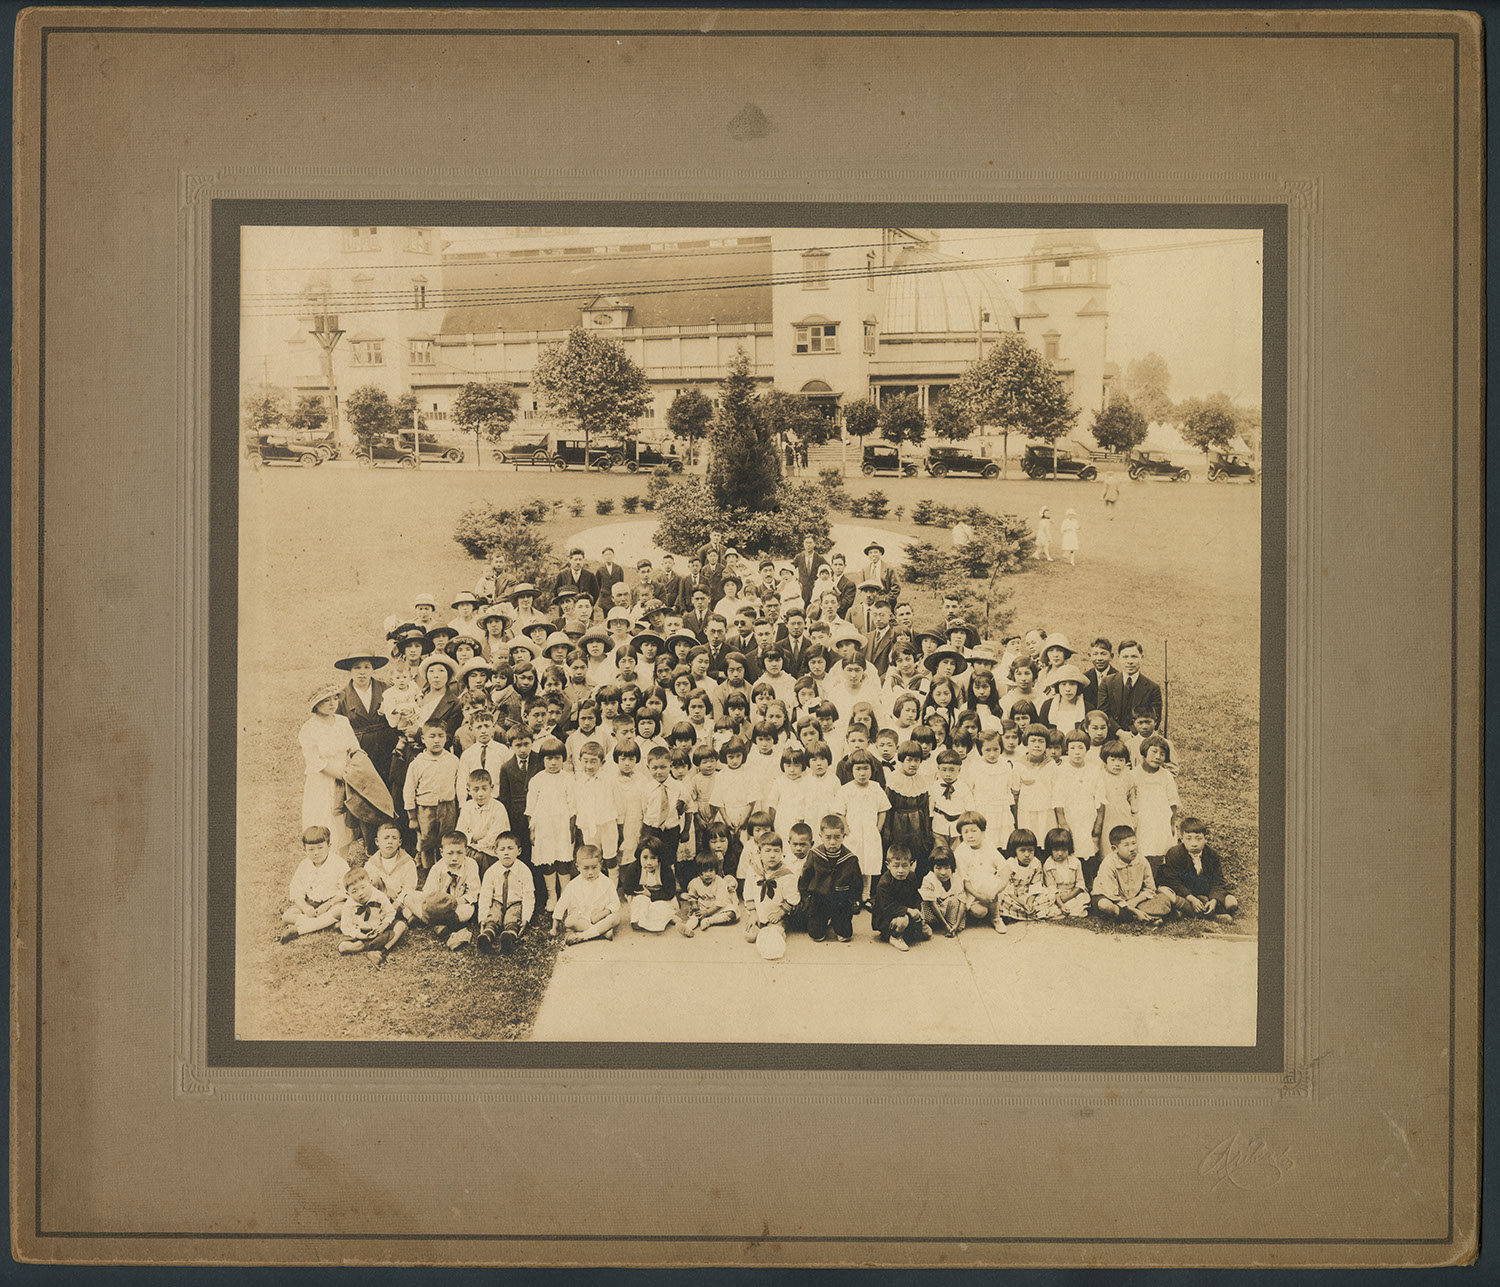 Joint Sunday school picnic in the park: Recto